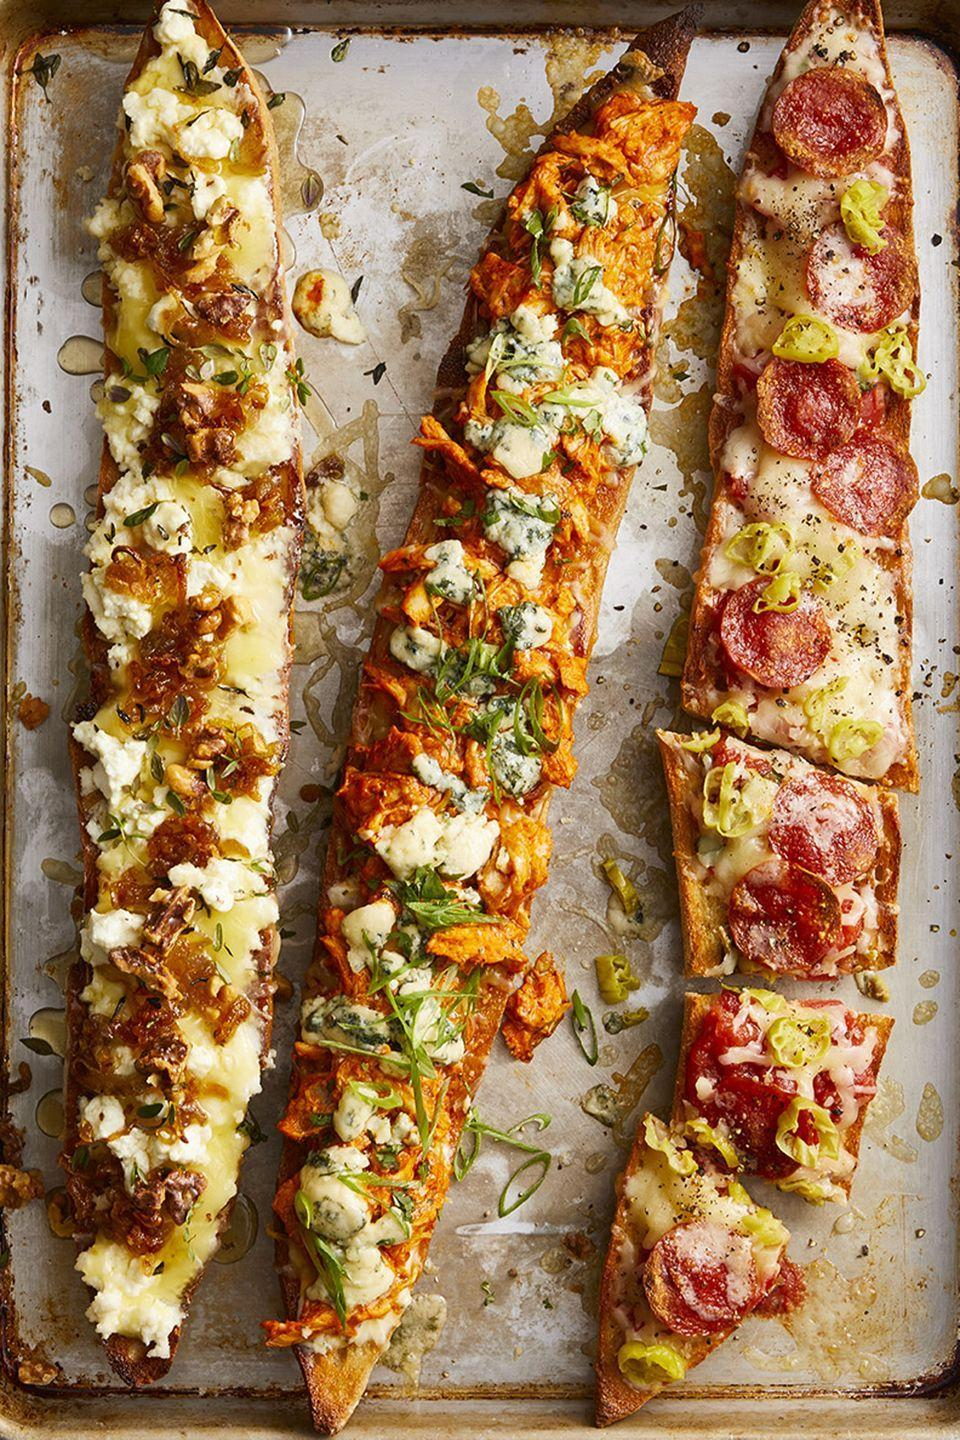 """<p>Pizza counts as a snack, right? Well, it depends how you slice it ...</p><p><a href=""""https://www.goodhousekeeping.com/food-recipes/easy/a47670/baguette-pizza-recipe/"""" rel=""""nofollow noopener"""" target=""""_blank"""" data-ylk=""""slk:Get the recipe for Baguette Pizzas »"""" class=""""link rapid-noclick-resp""""><em>Get the recipe for Baguette Pizzas » </em></a></p>"""